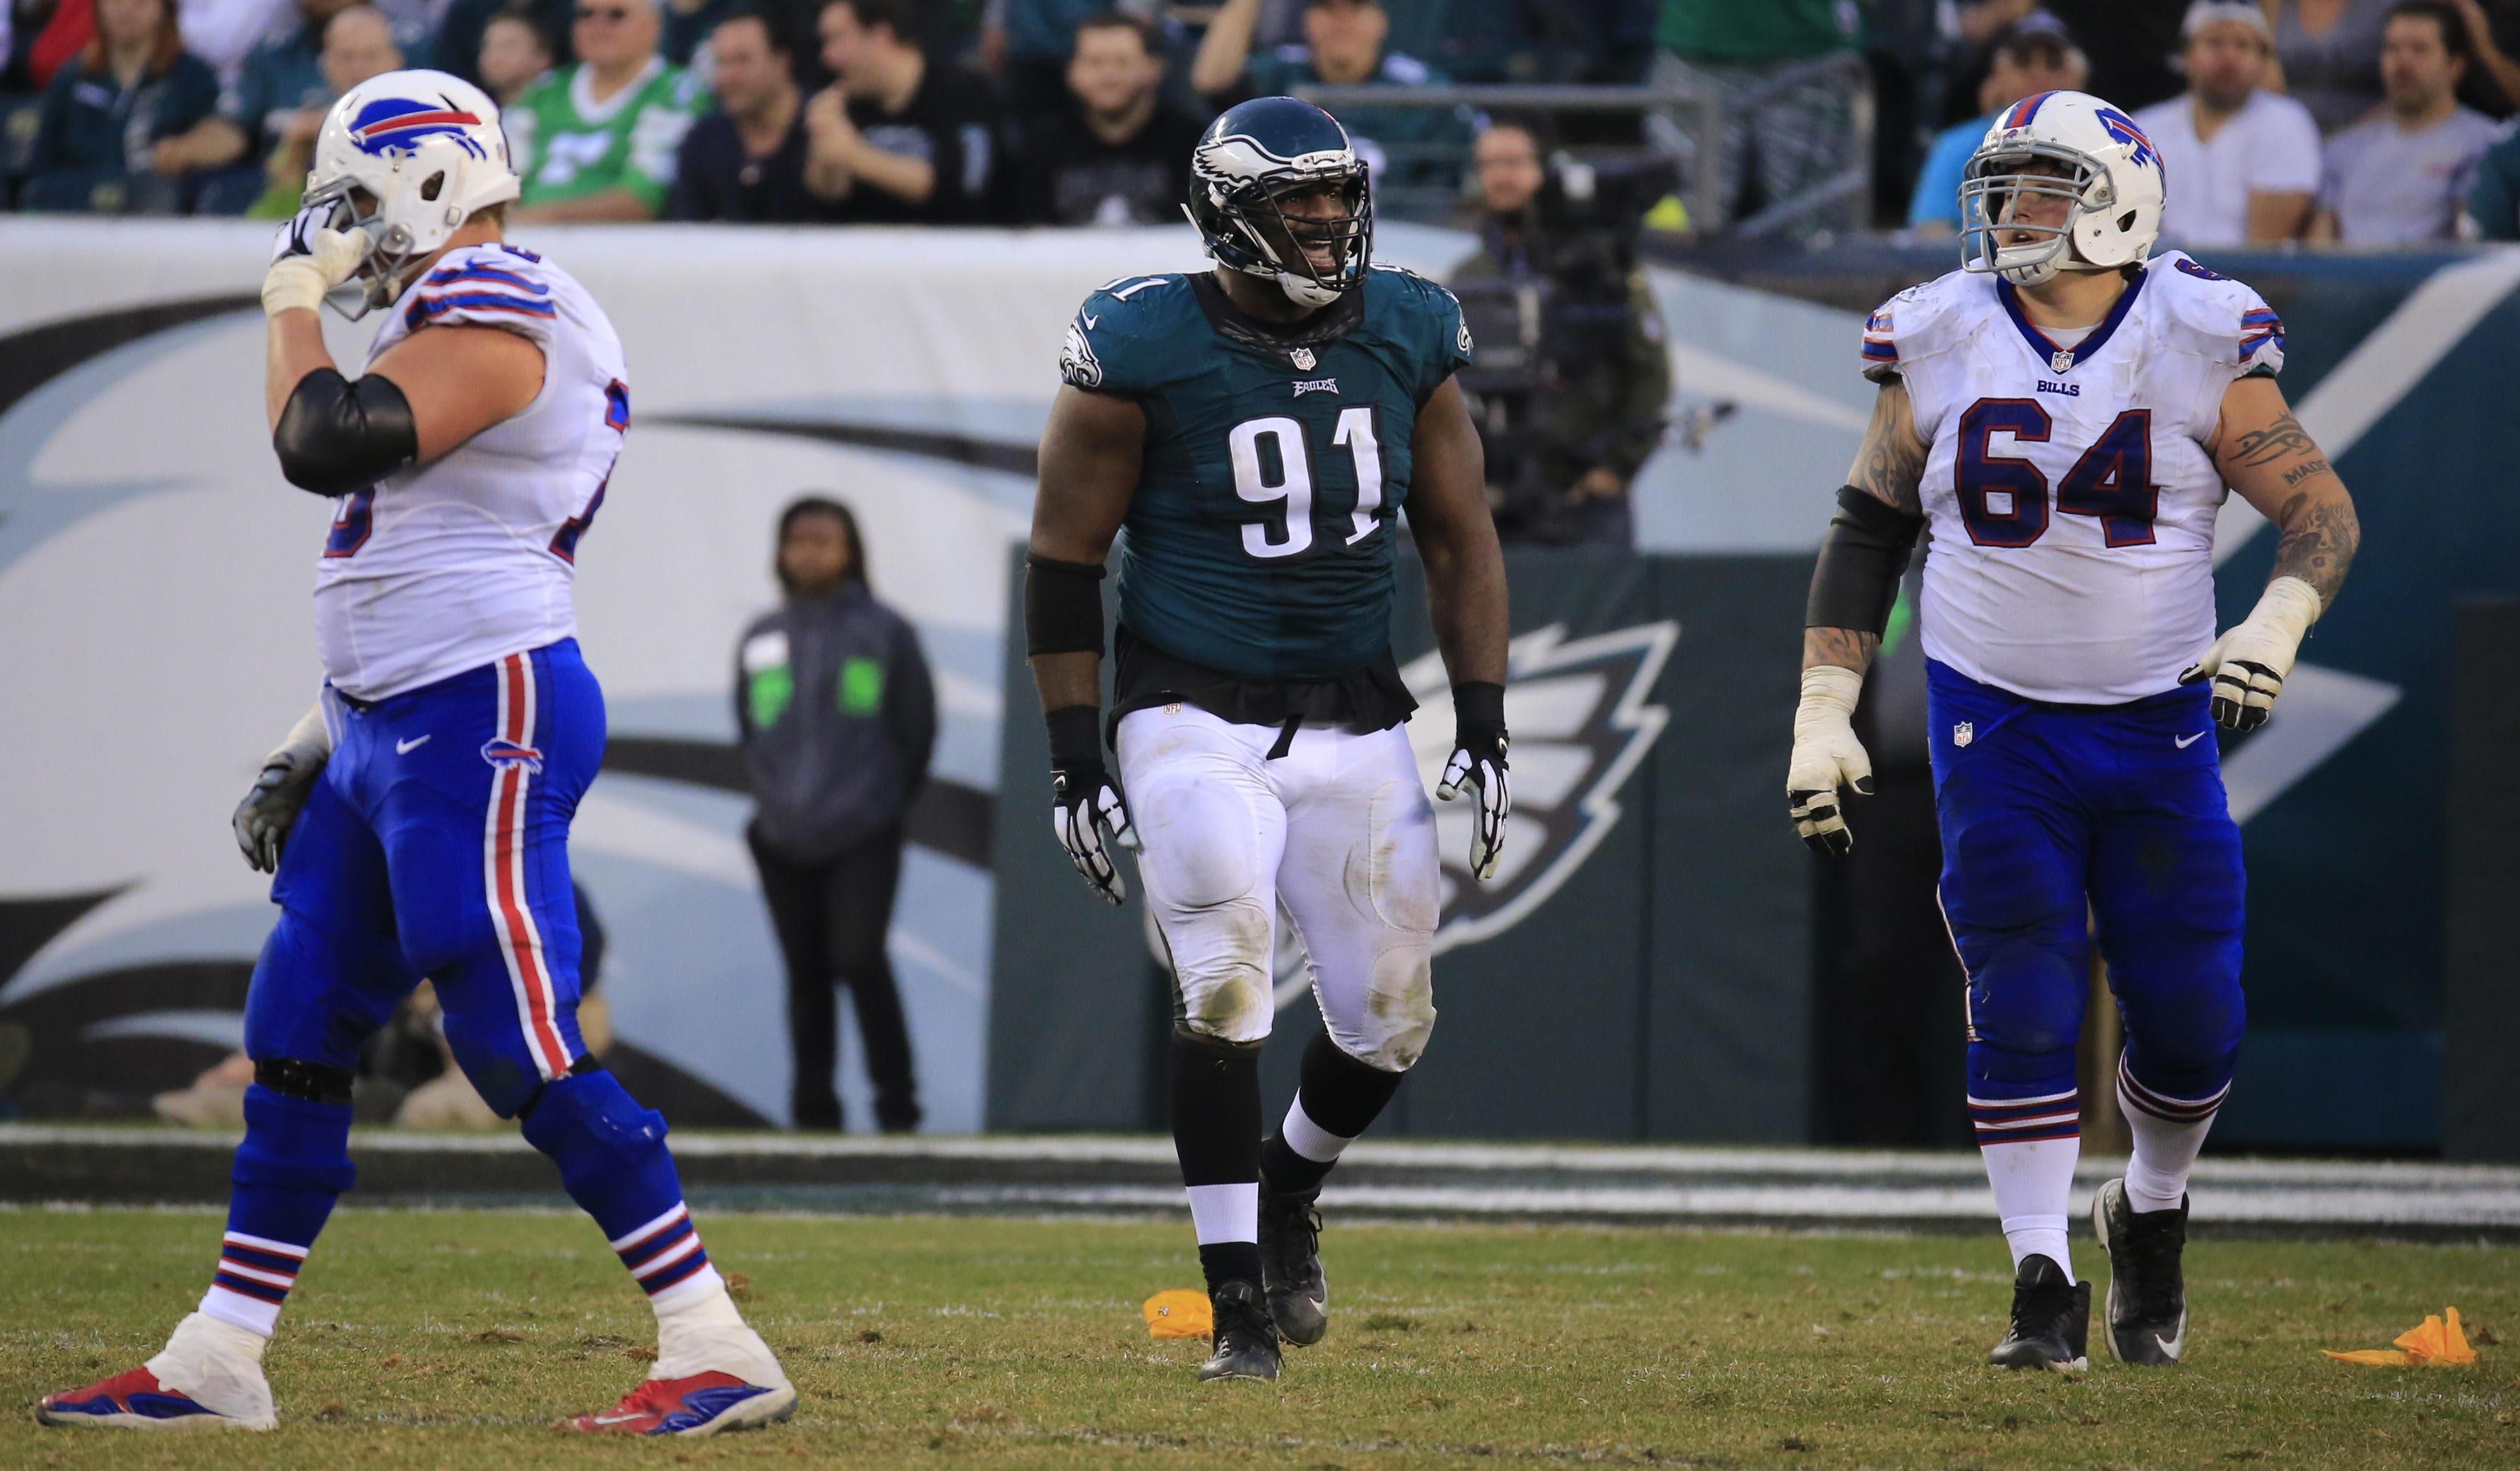 """Bills offensive guard Richie Incognito said Eagles defensive tackle Fletcher Cox, left, """"ate my lunch today. ... He got me early and often."""""""